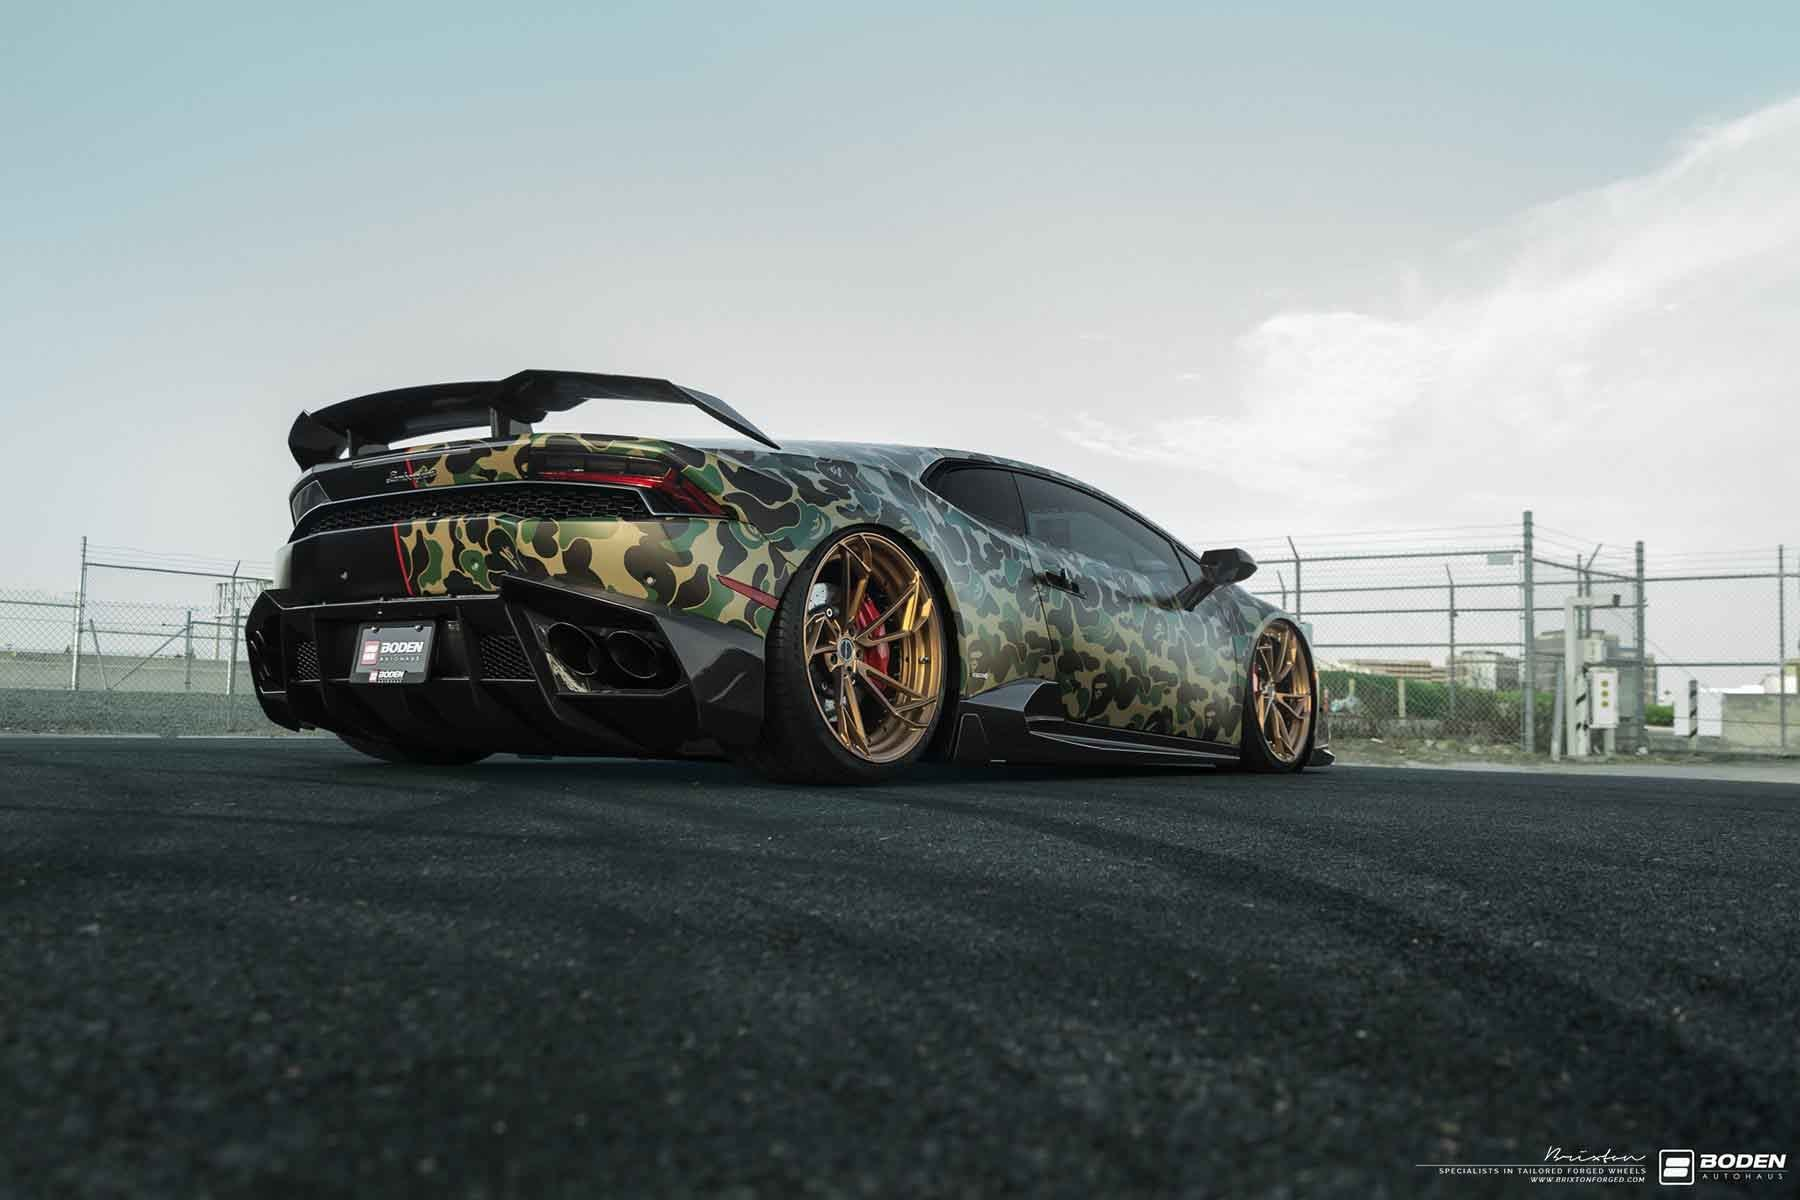 images-products-1-1958-232974246-brixton-forged-wheels-lamborghini-huracan-boden-autohaus-wstbank-bape-camo-brixton-forged-pf1-du.jpg